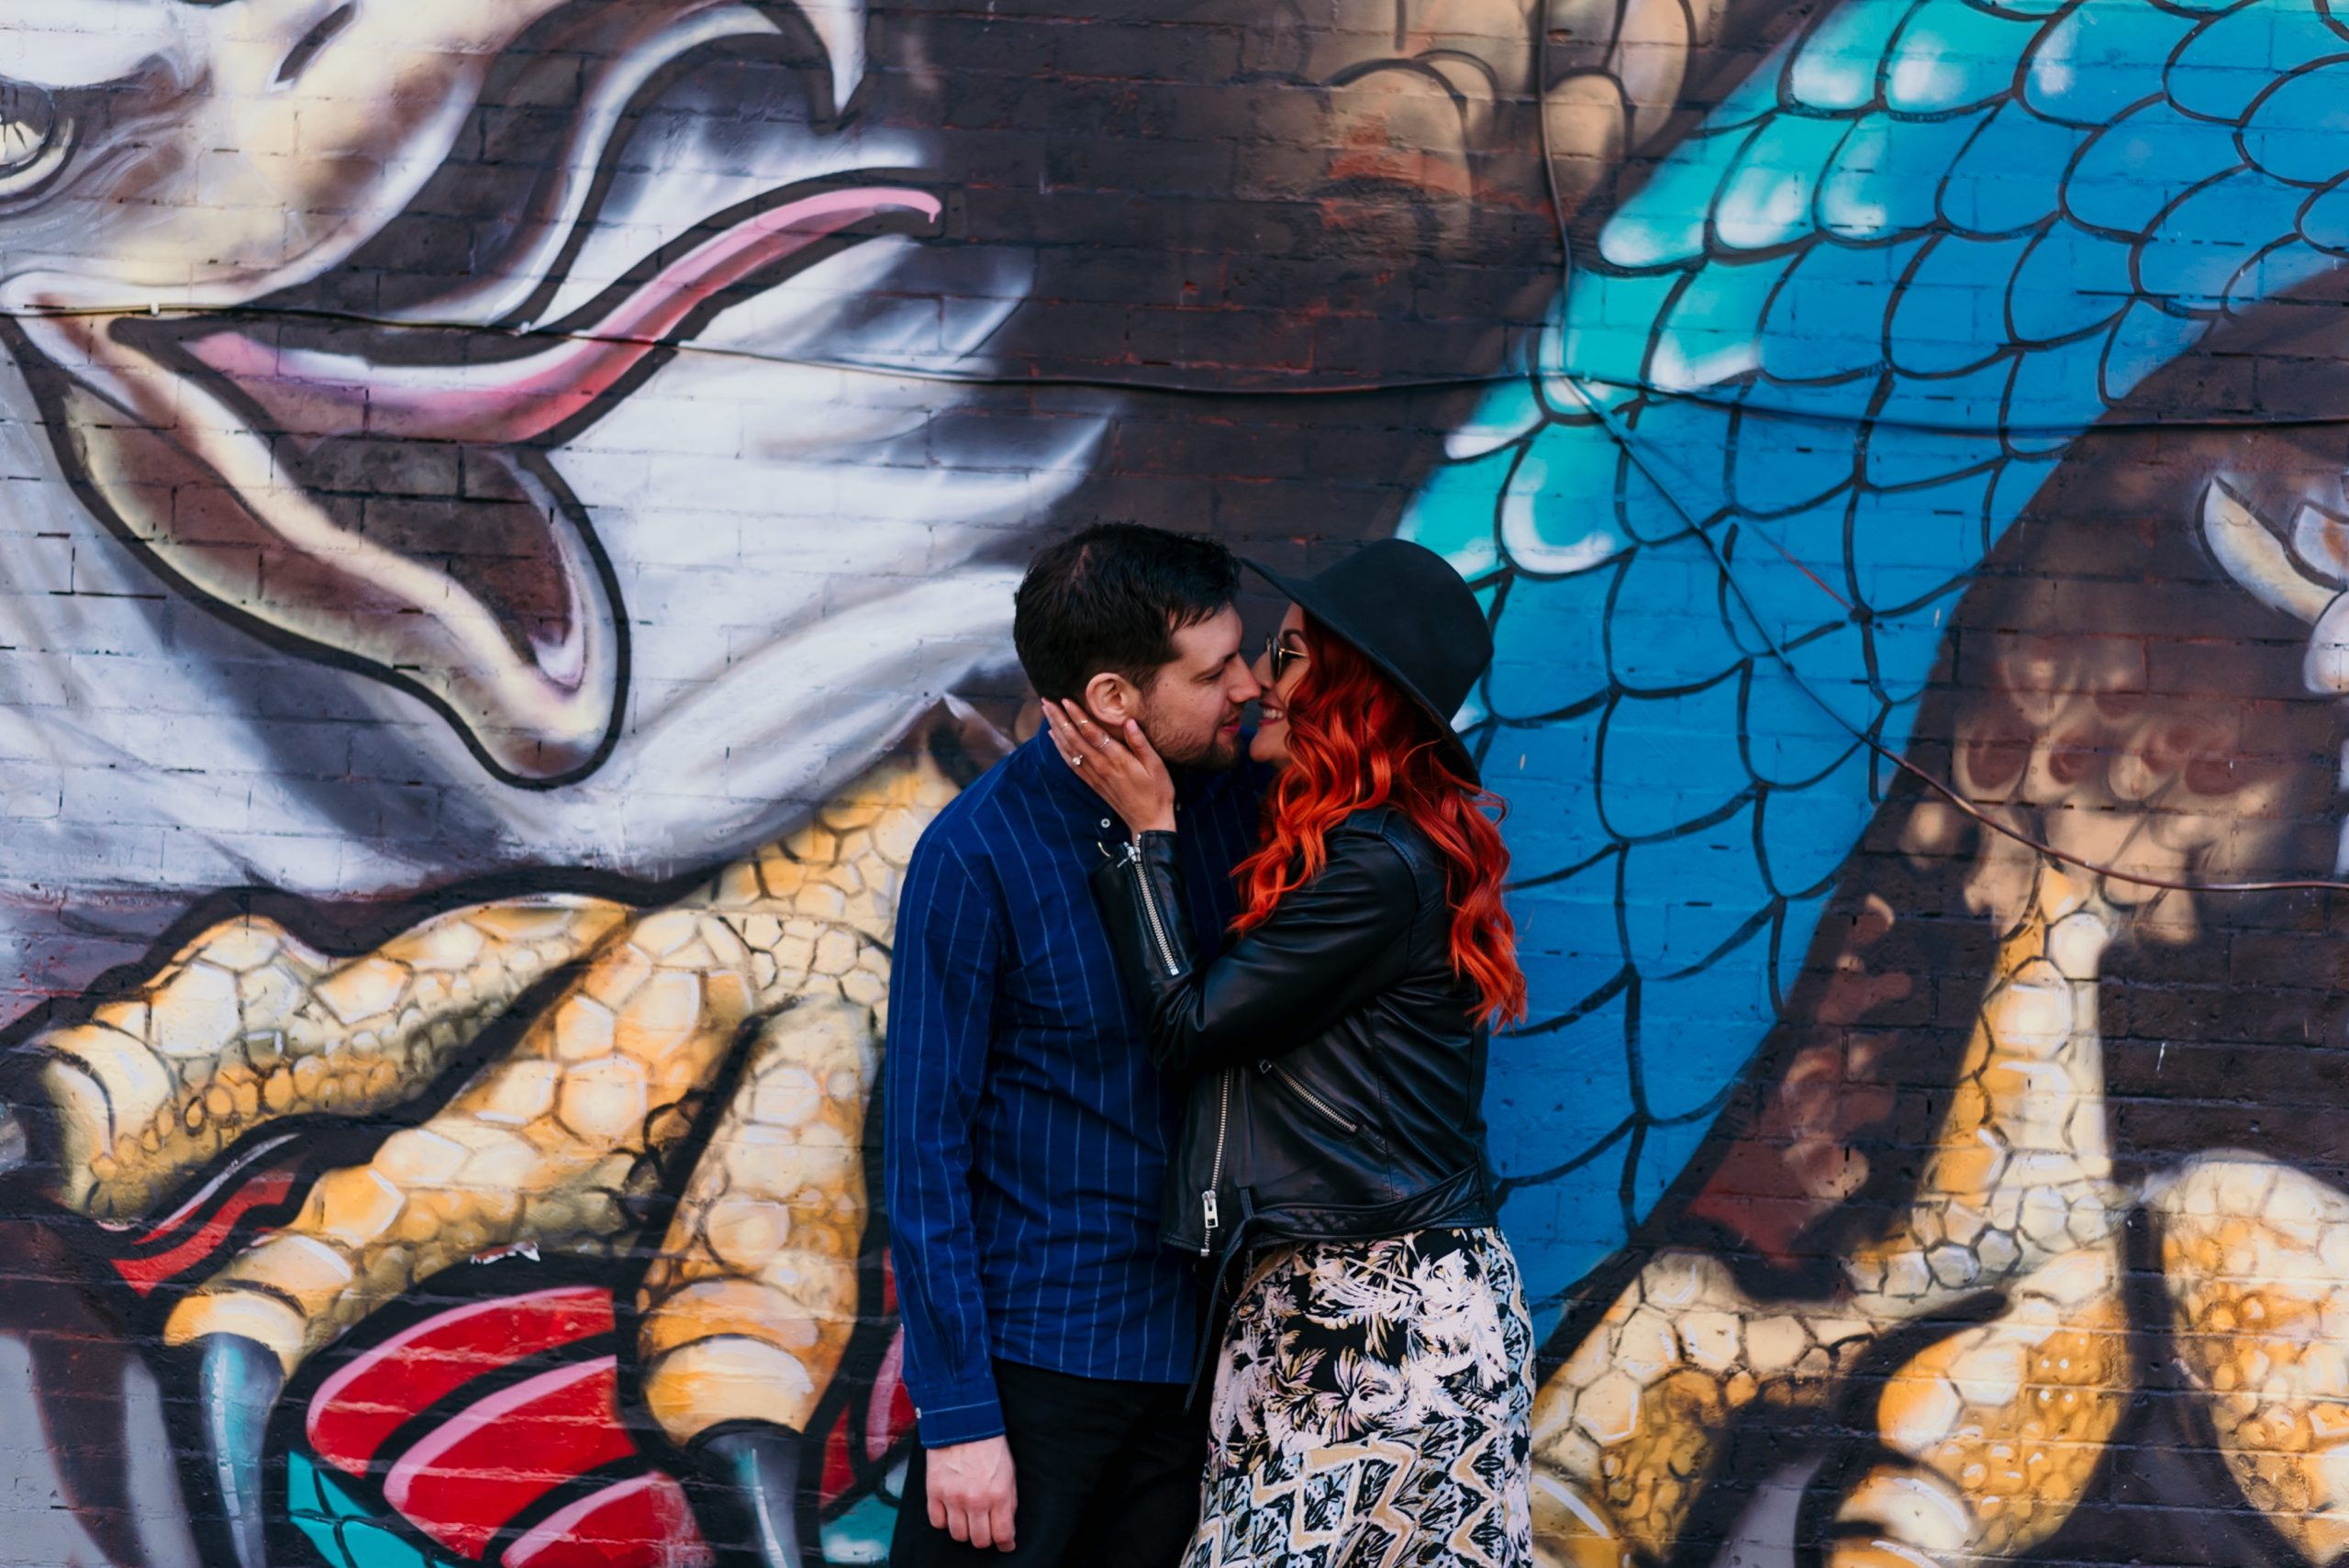 williamsburg-graffiti-engagement-photos-brooklyn-photographer-suess-moments-nyc